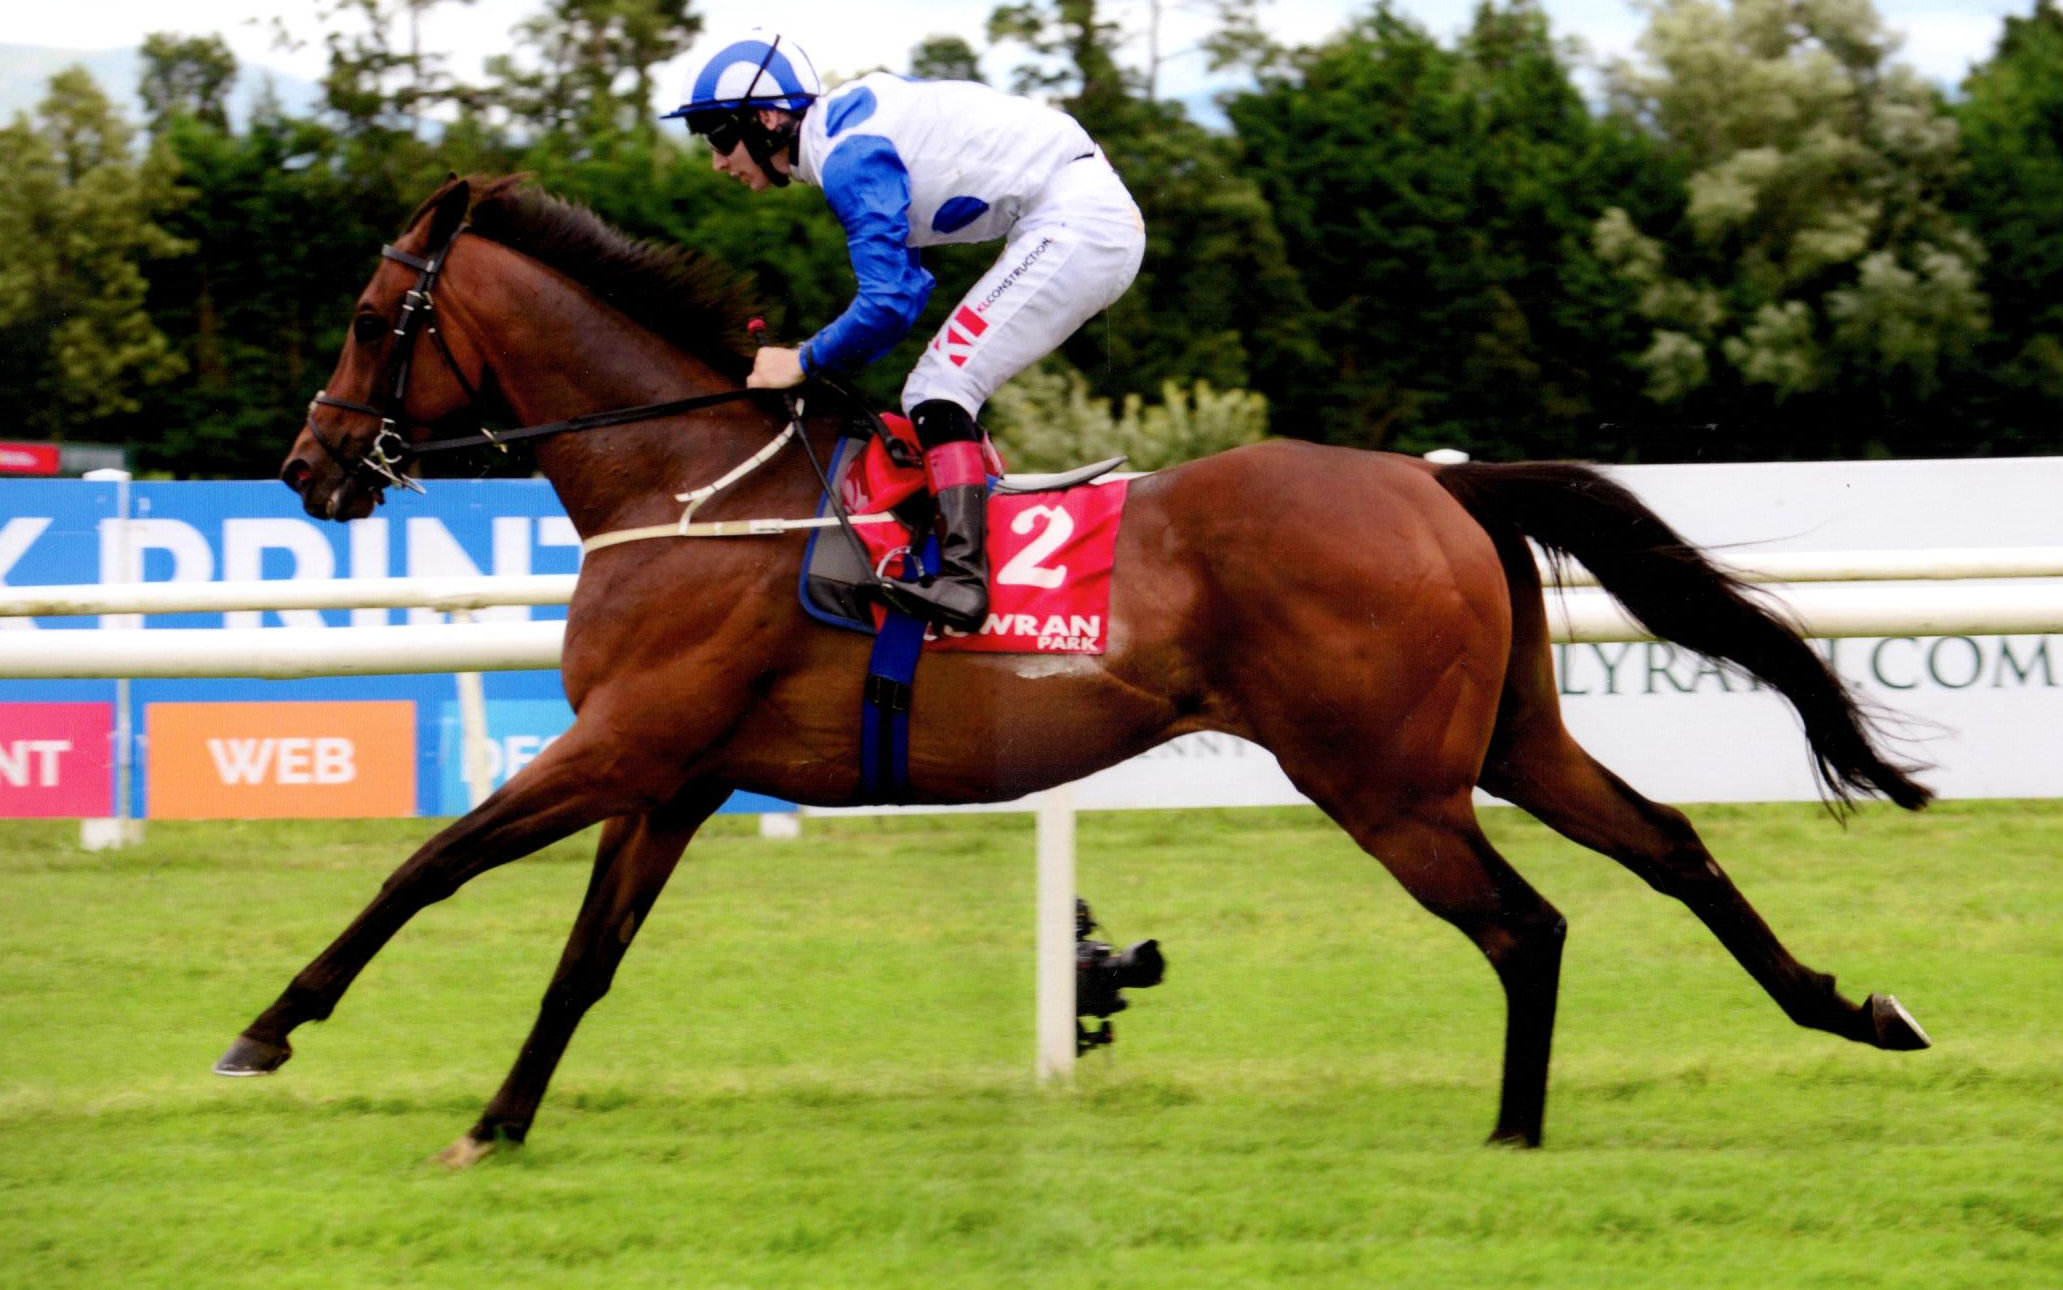 TENNESSEE WILDCAT gets the job done at Gowran Park, 14th August 2019